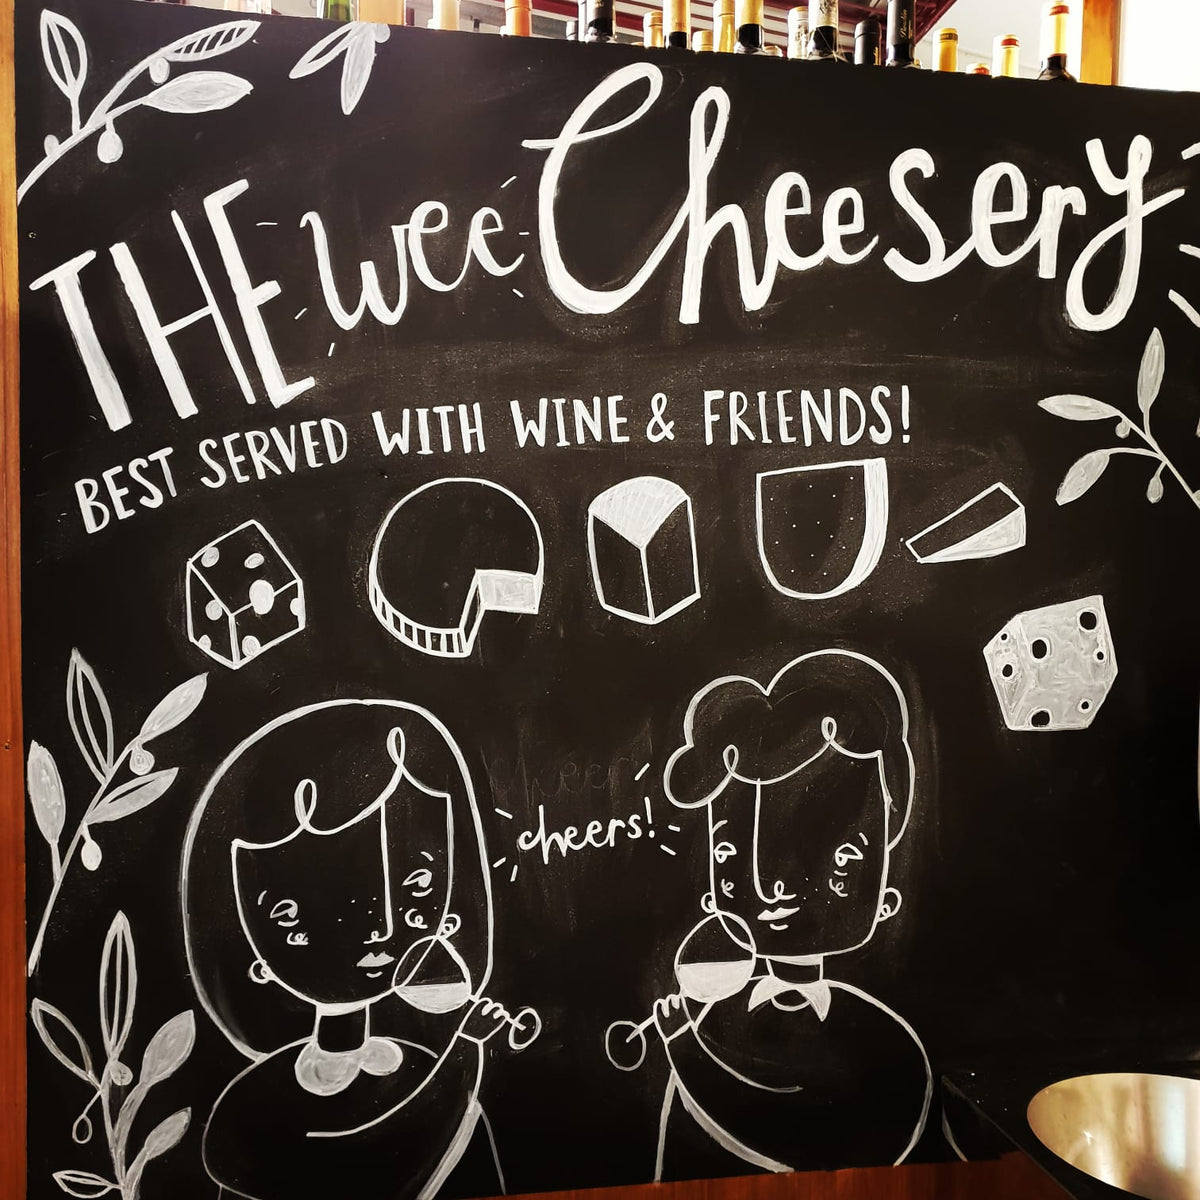 Cheese and Wine Pairing of the Week - 21/3/19